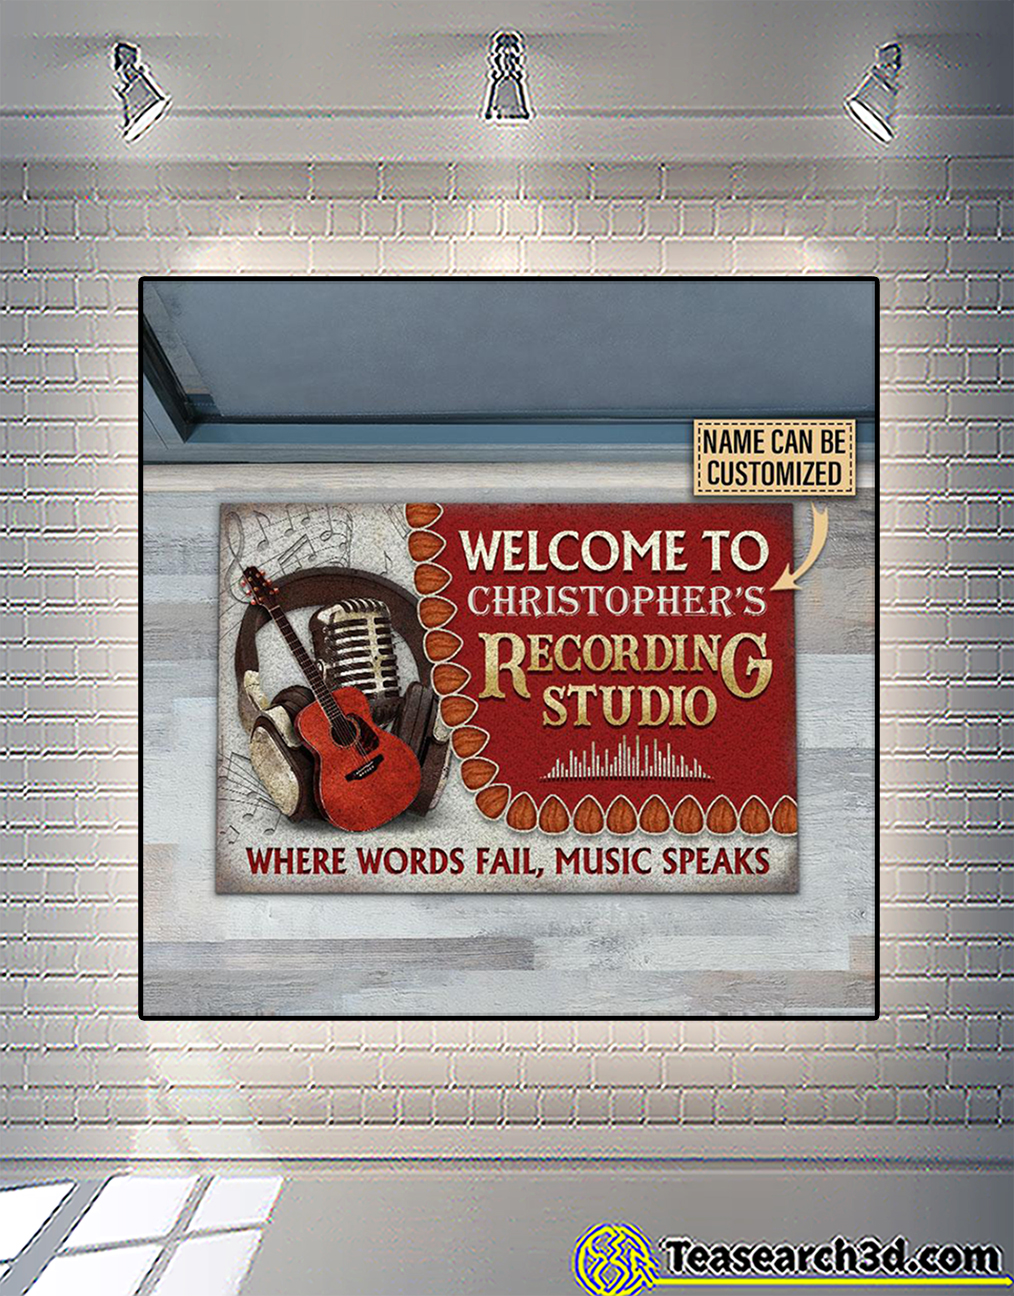 Personalized custom name acoustic guitar welcome to recording studio doormat 1